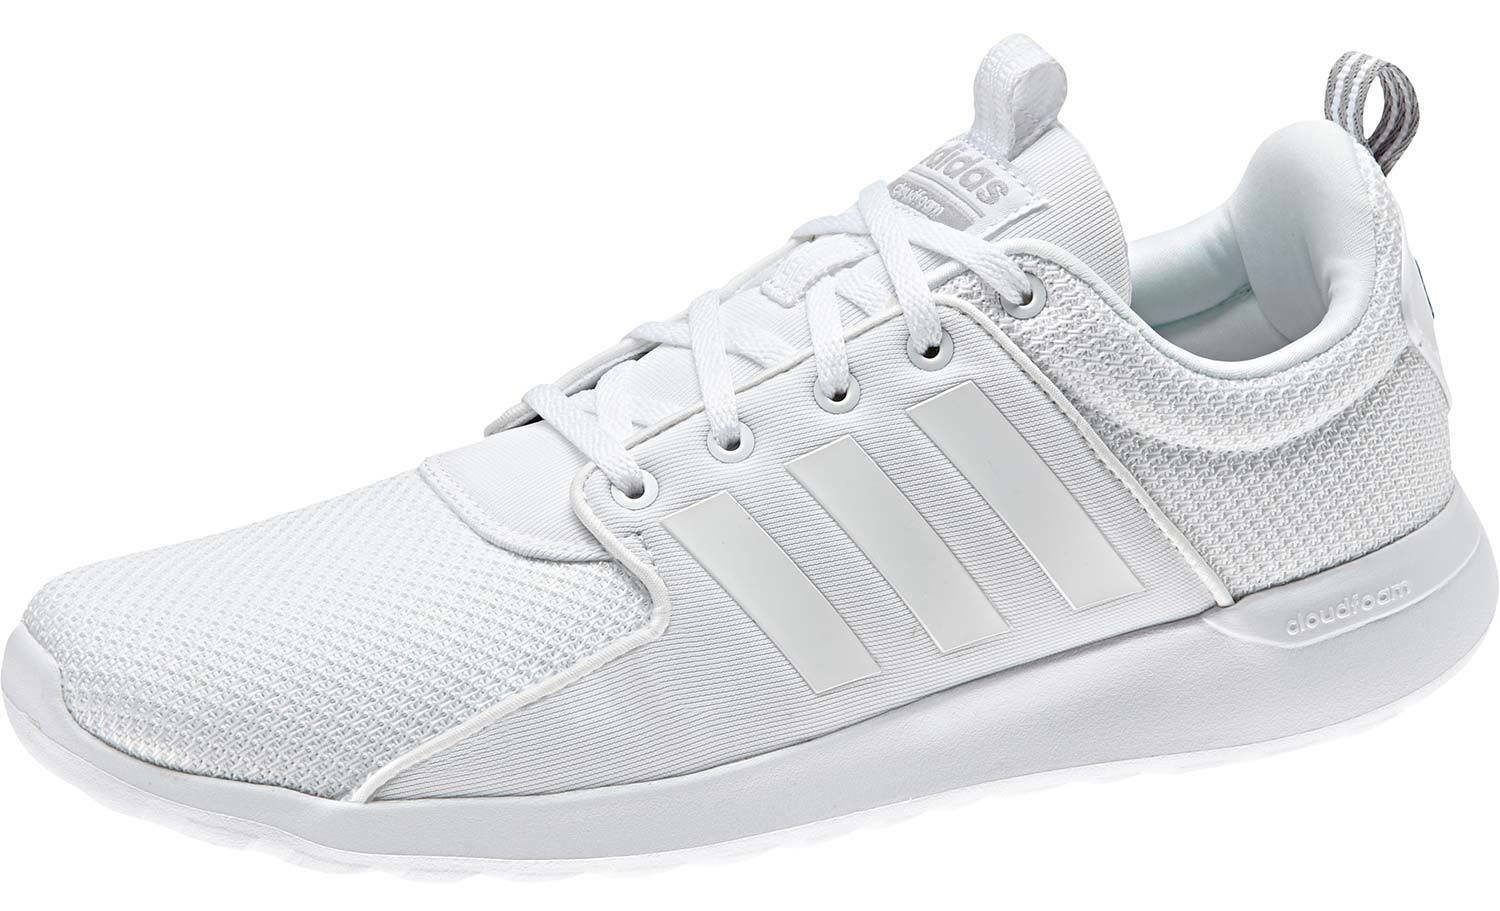 Adidas Core Men Sneakers Sneakers Leisure Aw4262 White New